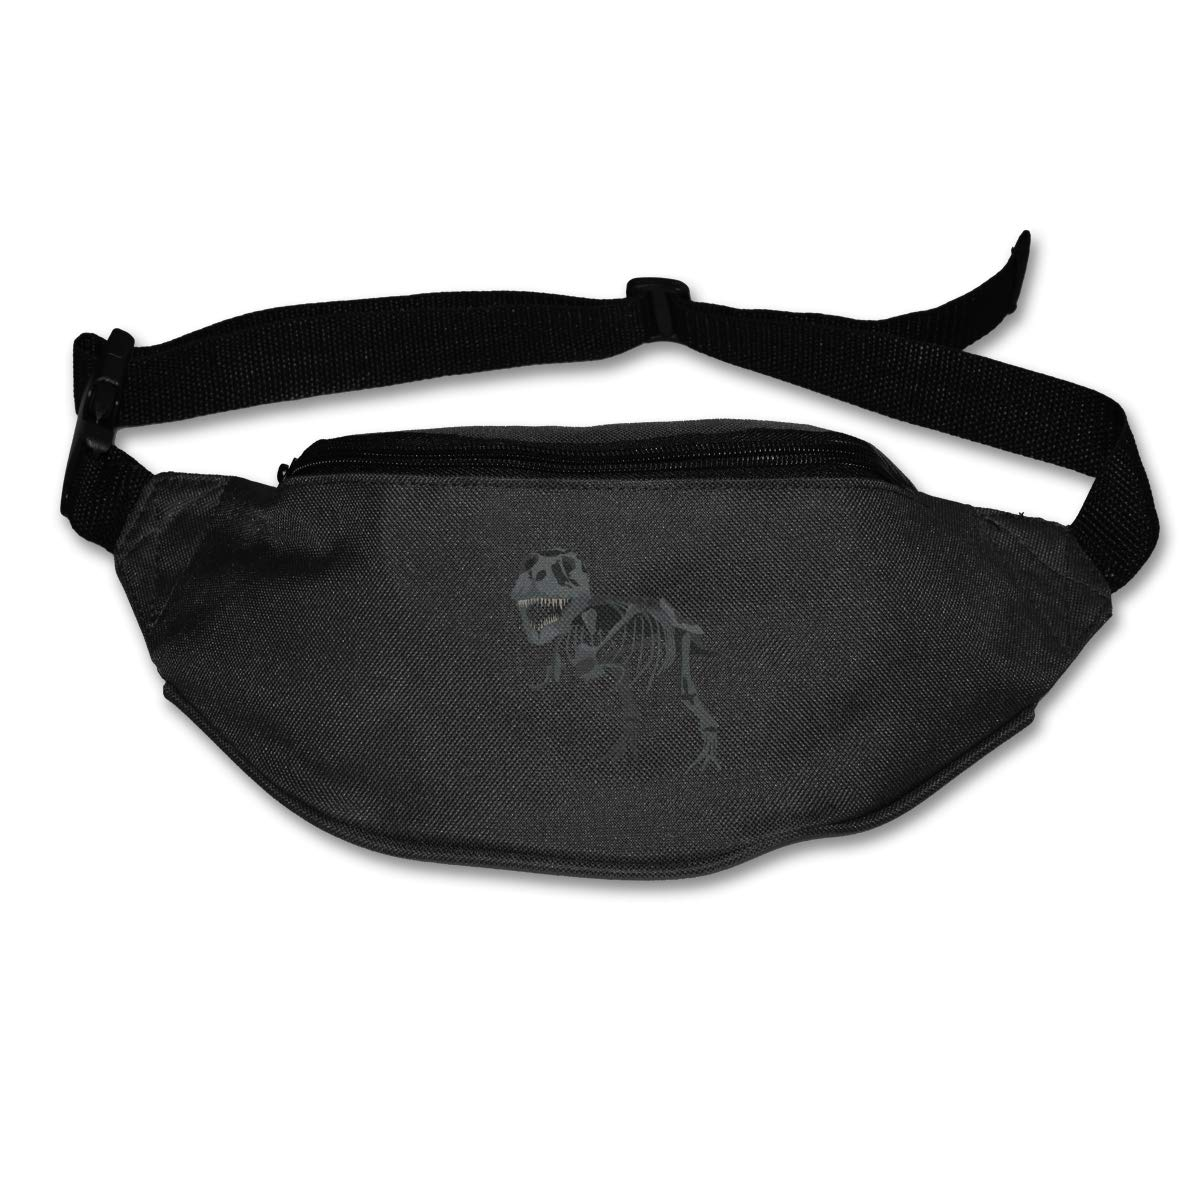 Grey Skeleton Dinosaur Sport Waist Pack Fanny Pack Adjustable For Travel